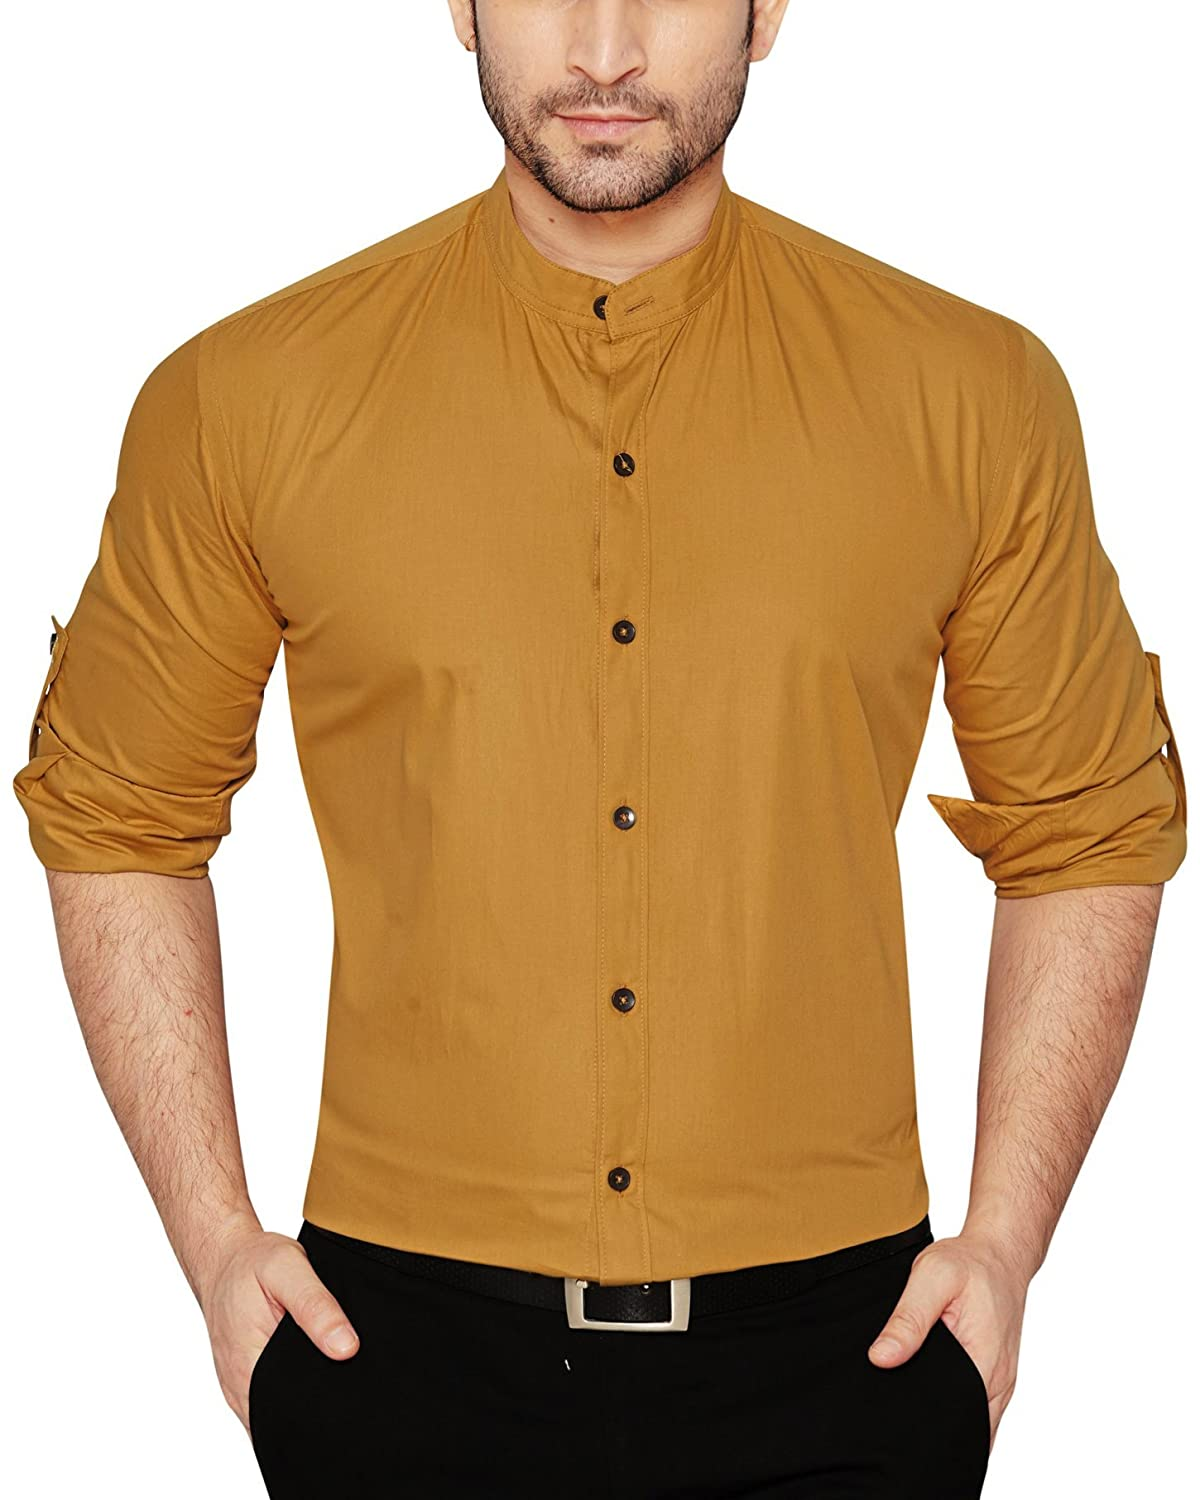 Global Rang Men's Cotton Casual Shirt